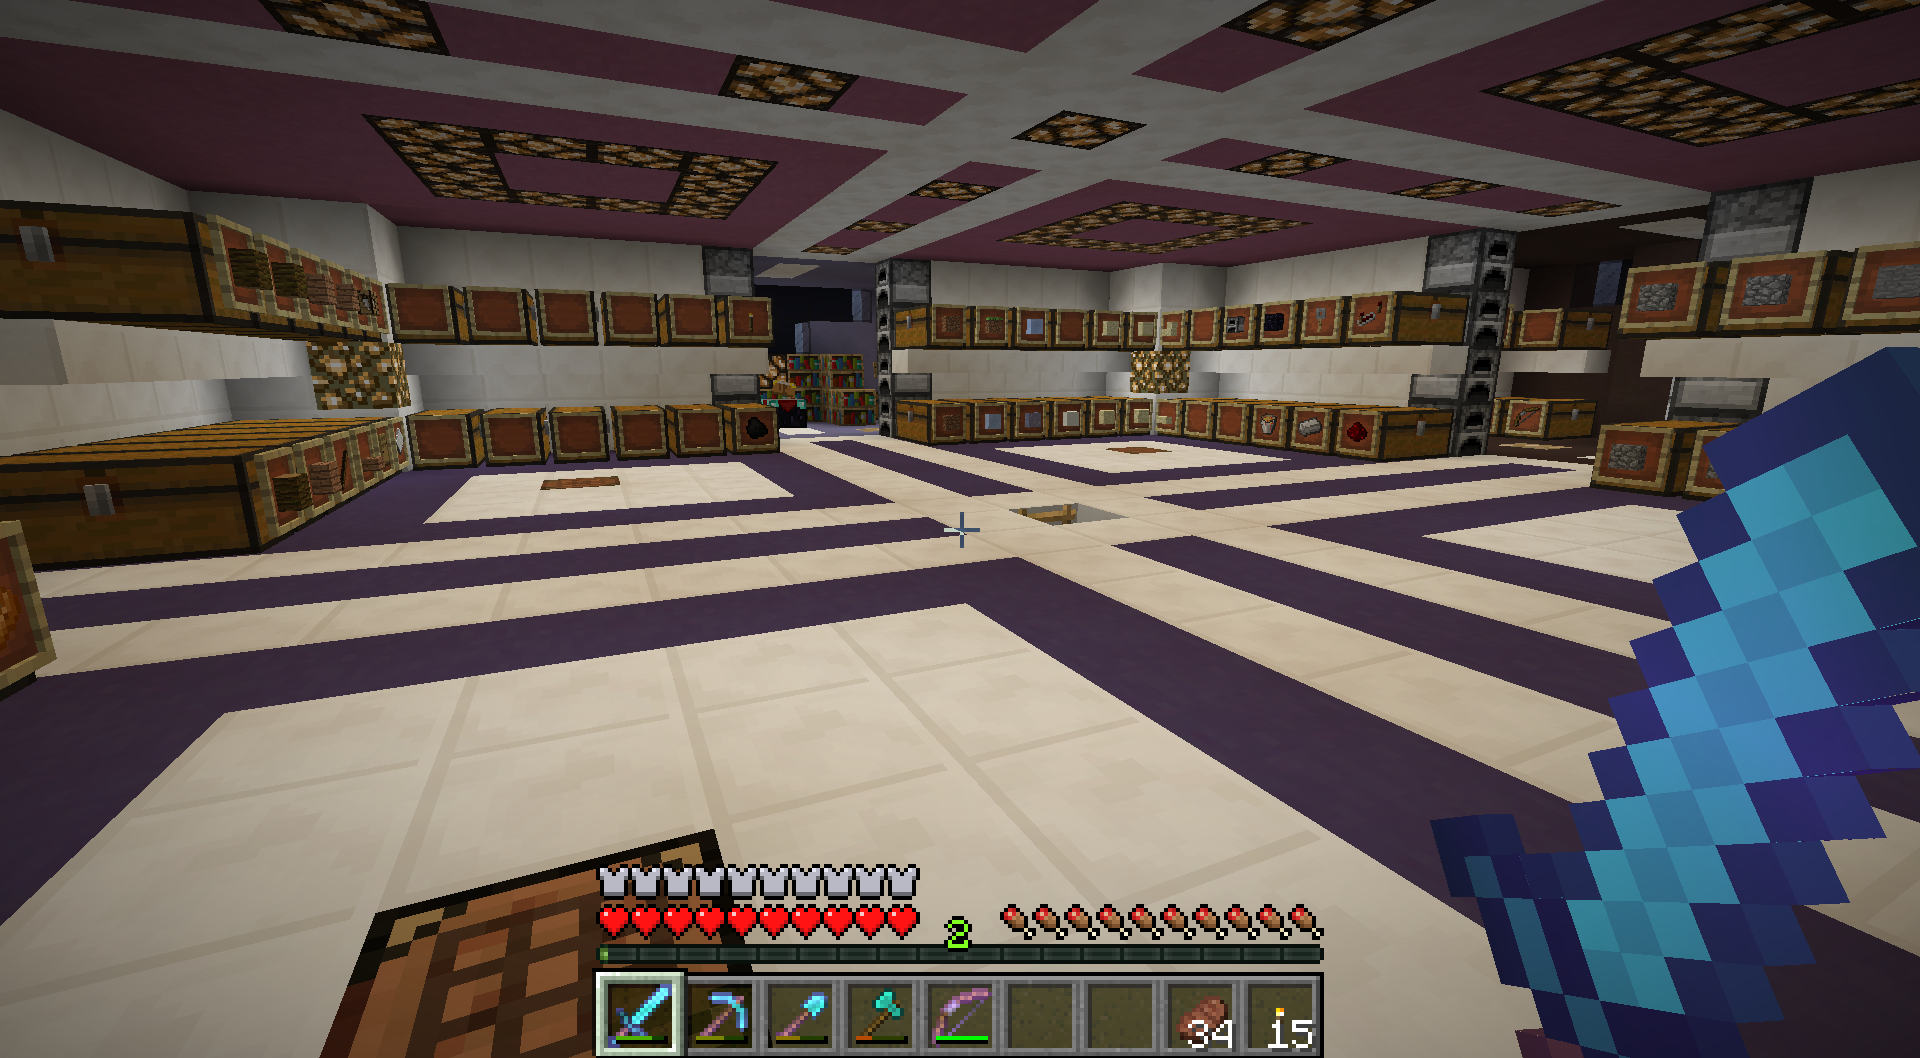 2014-07-24_12.53.02 & Storage Room and Organization - Survival Mode - Minecraft: Java ...